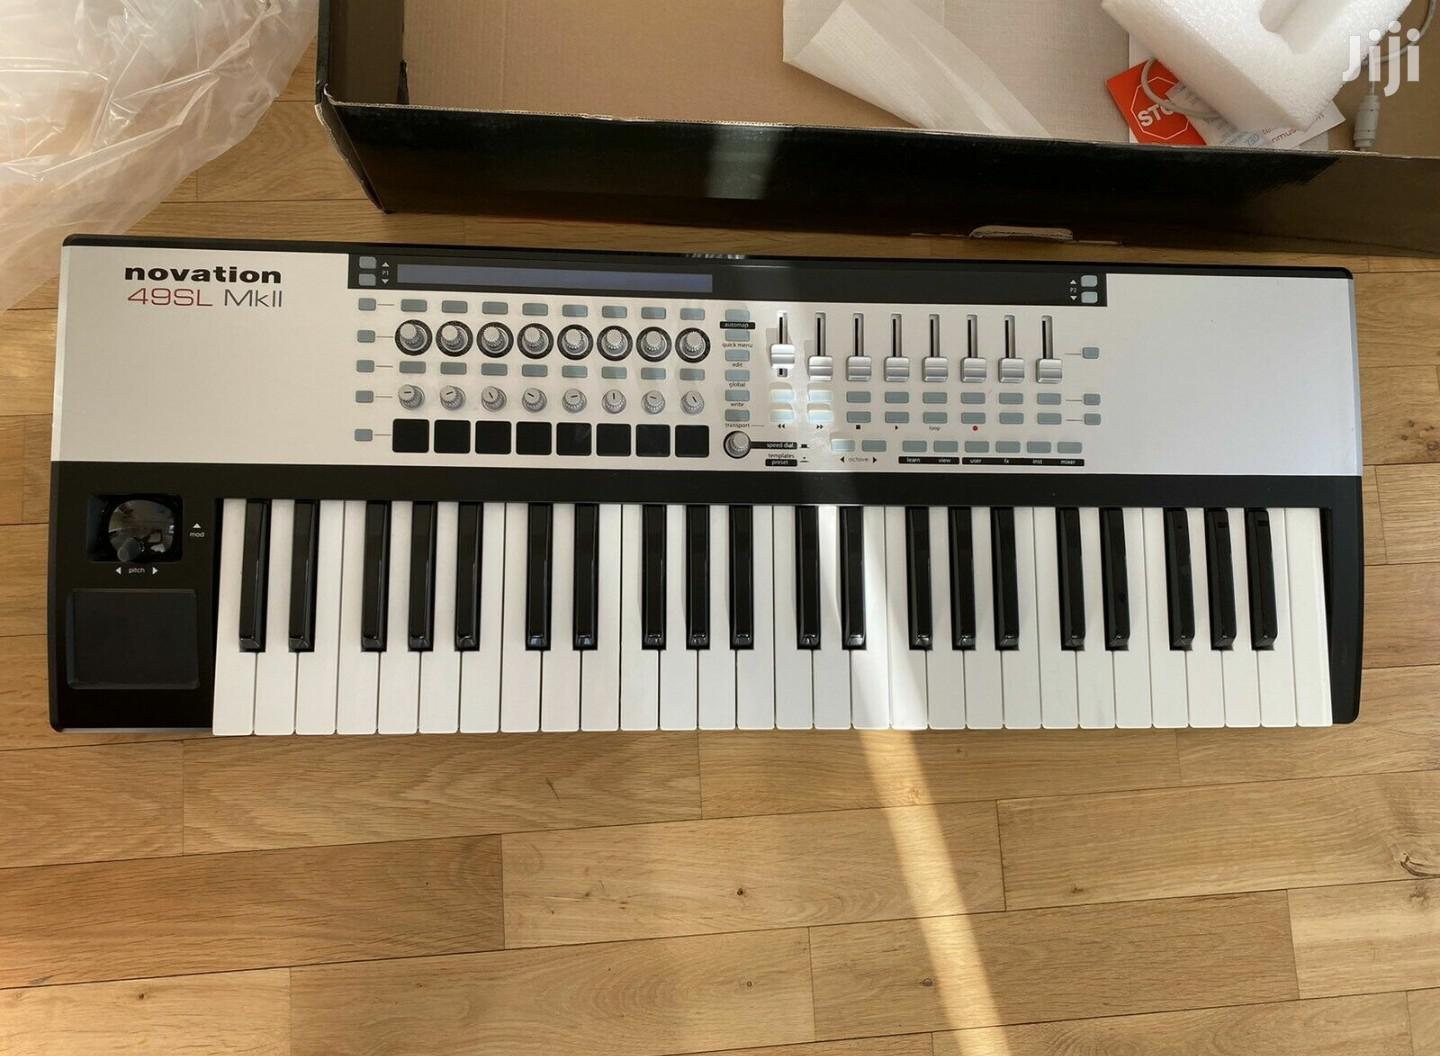 Novation Remote 49 SL MK II MIDI Keyboard.